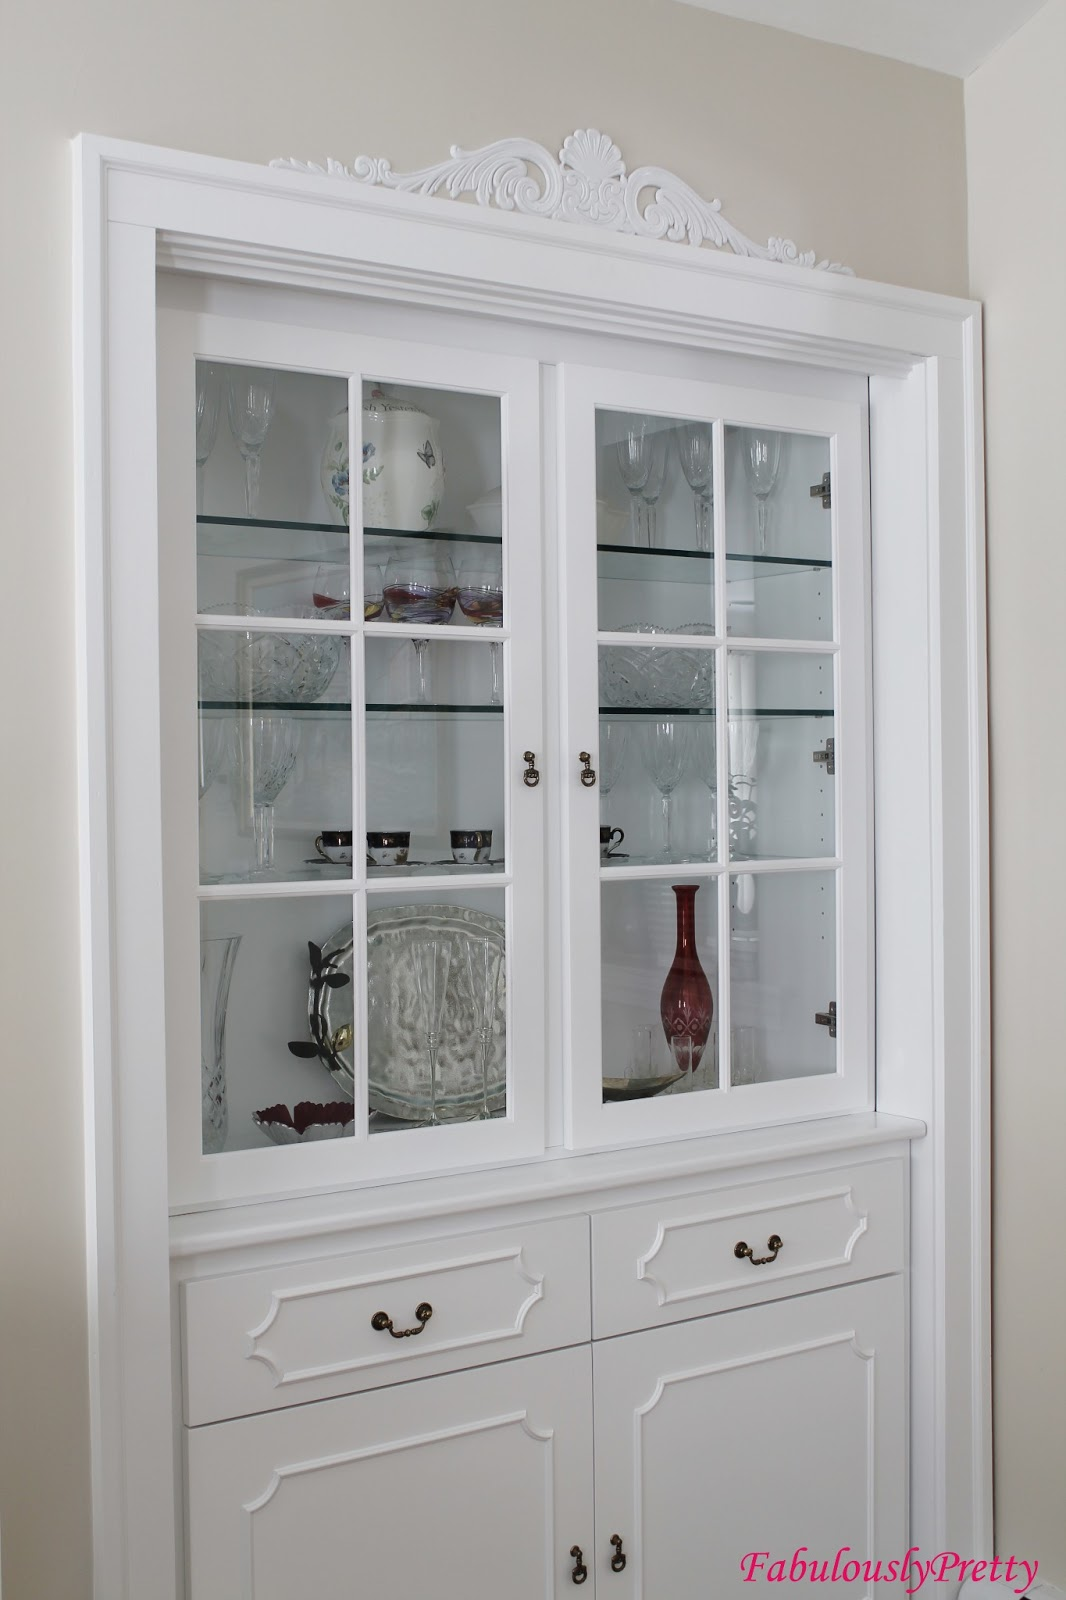 1000+ images about Kitchen: China cabinet on Pinterest ...